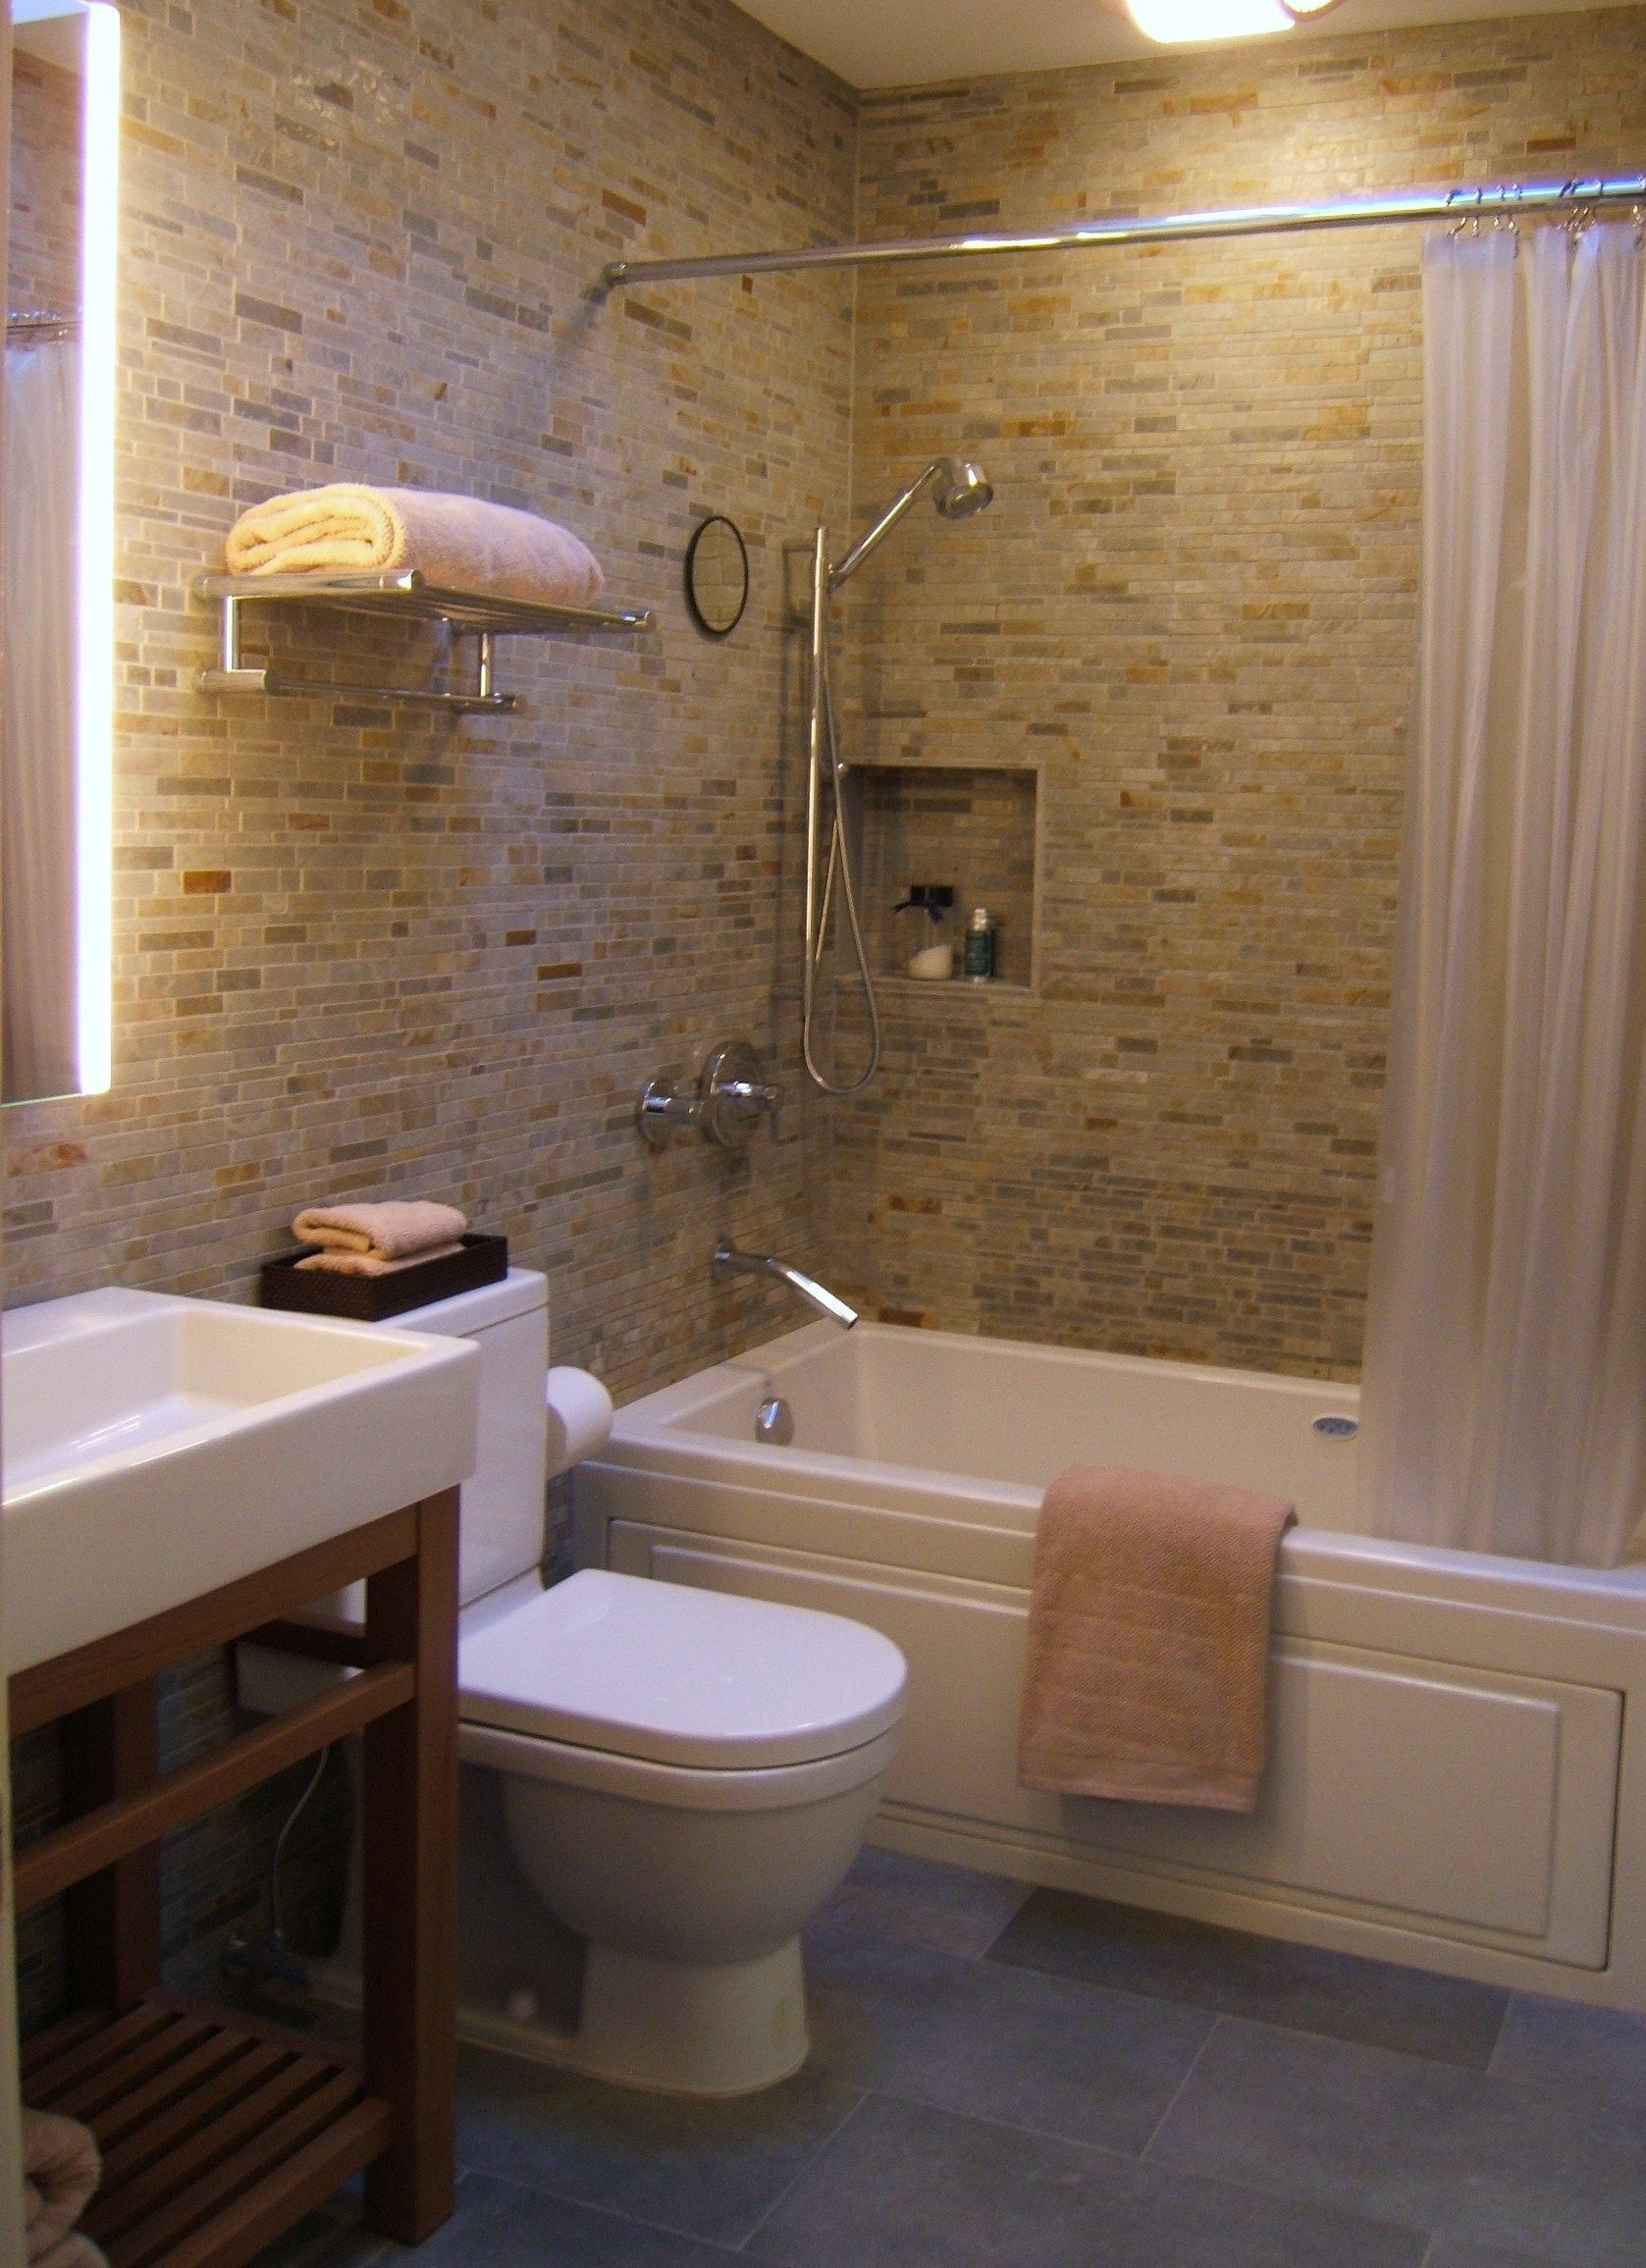 20 Beautiful Small Bathroom To Add To Your Dream Home Pinboard Now Small Bathroom Layout Budget Bathroom Remodel Small Bathroom Remodel Bathroom decor south africa